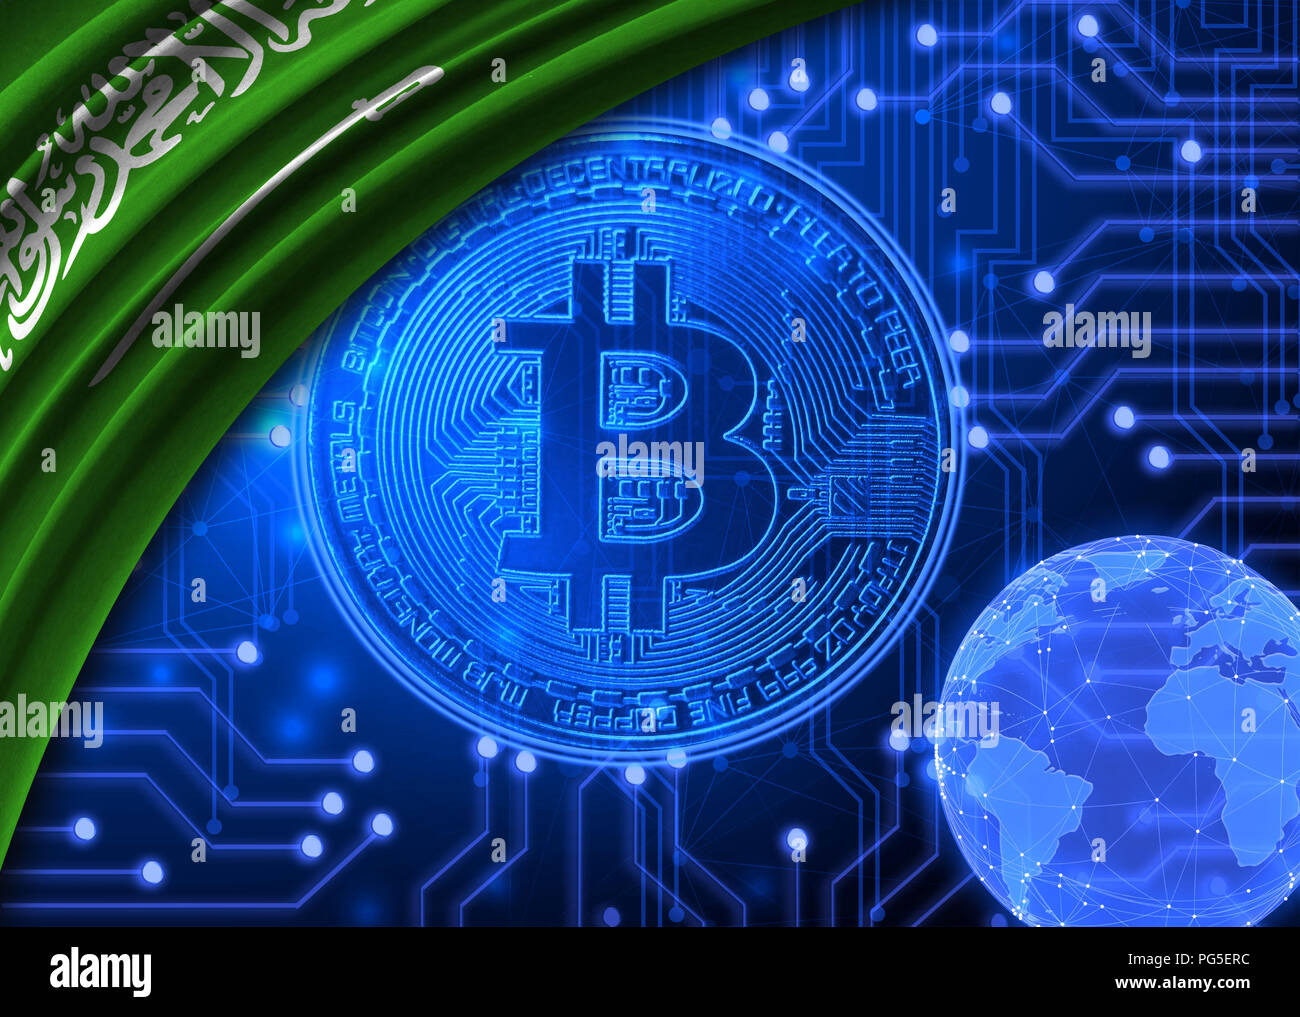 Flag of Saudi Arabia is shown against the background of crypto currency bitcoin. Global world crypto currency-bitcoin. Shows the current exchange rate - Stock Image